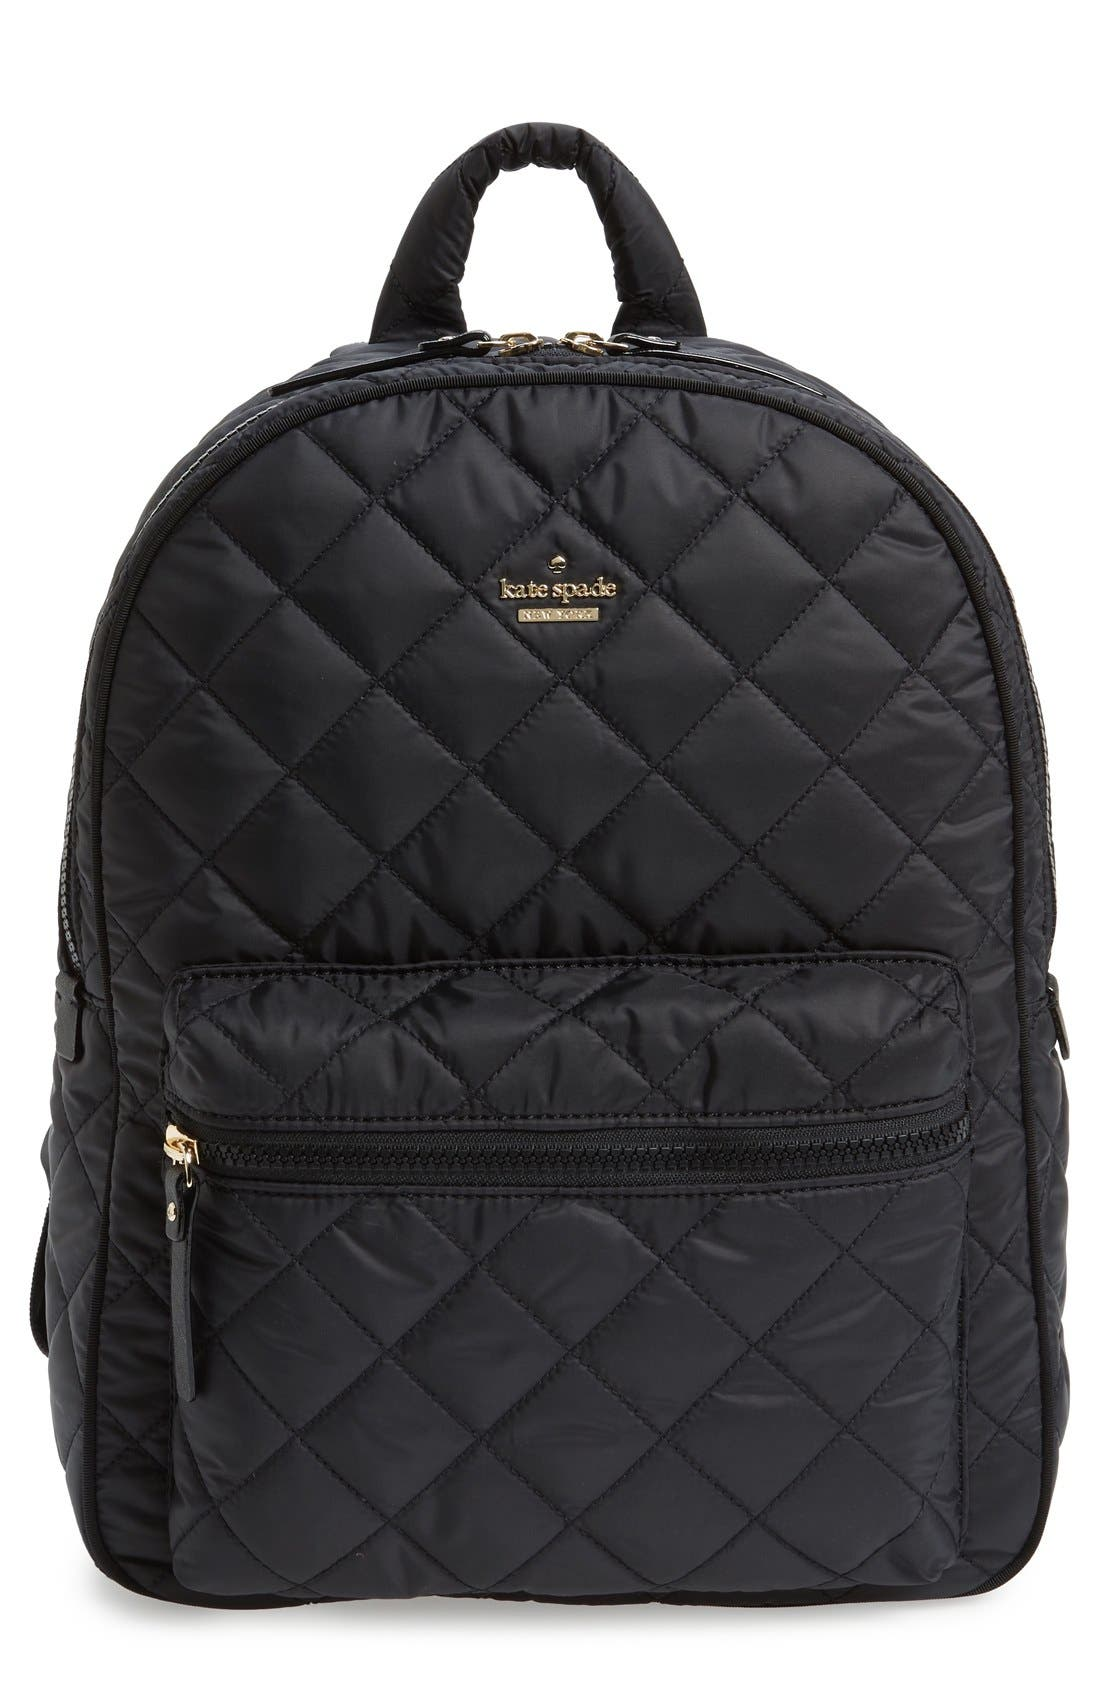 Alternate Image 1 Selected - kate spade new york 'ridge street siggy' quilted backpack